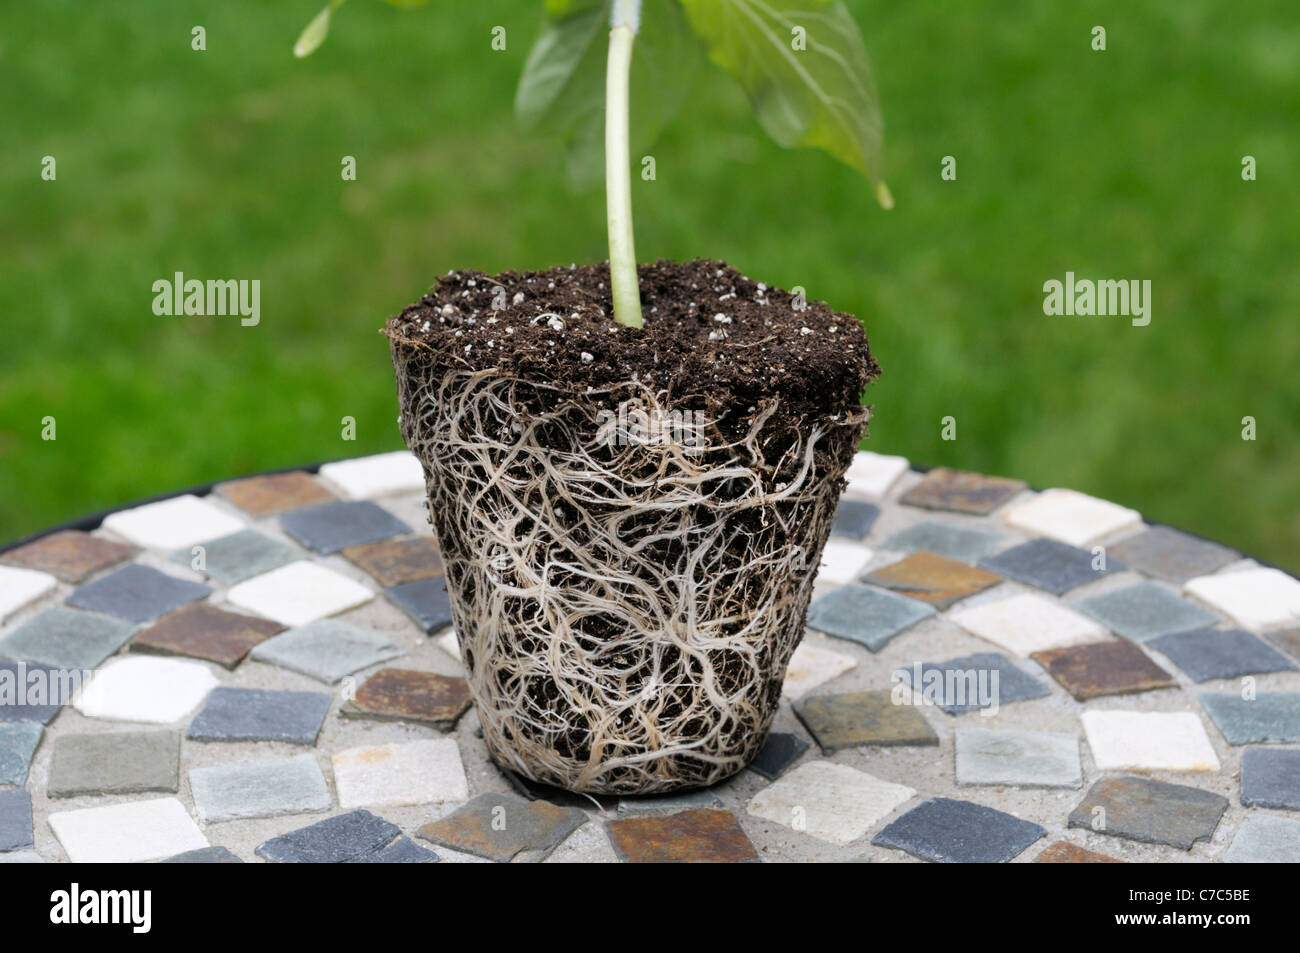 Root ball from sunflower plant, Helianthus annuus - Stock Image